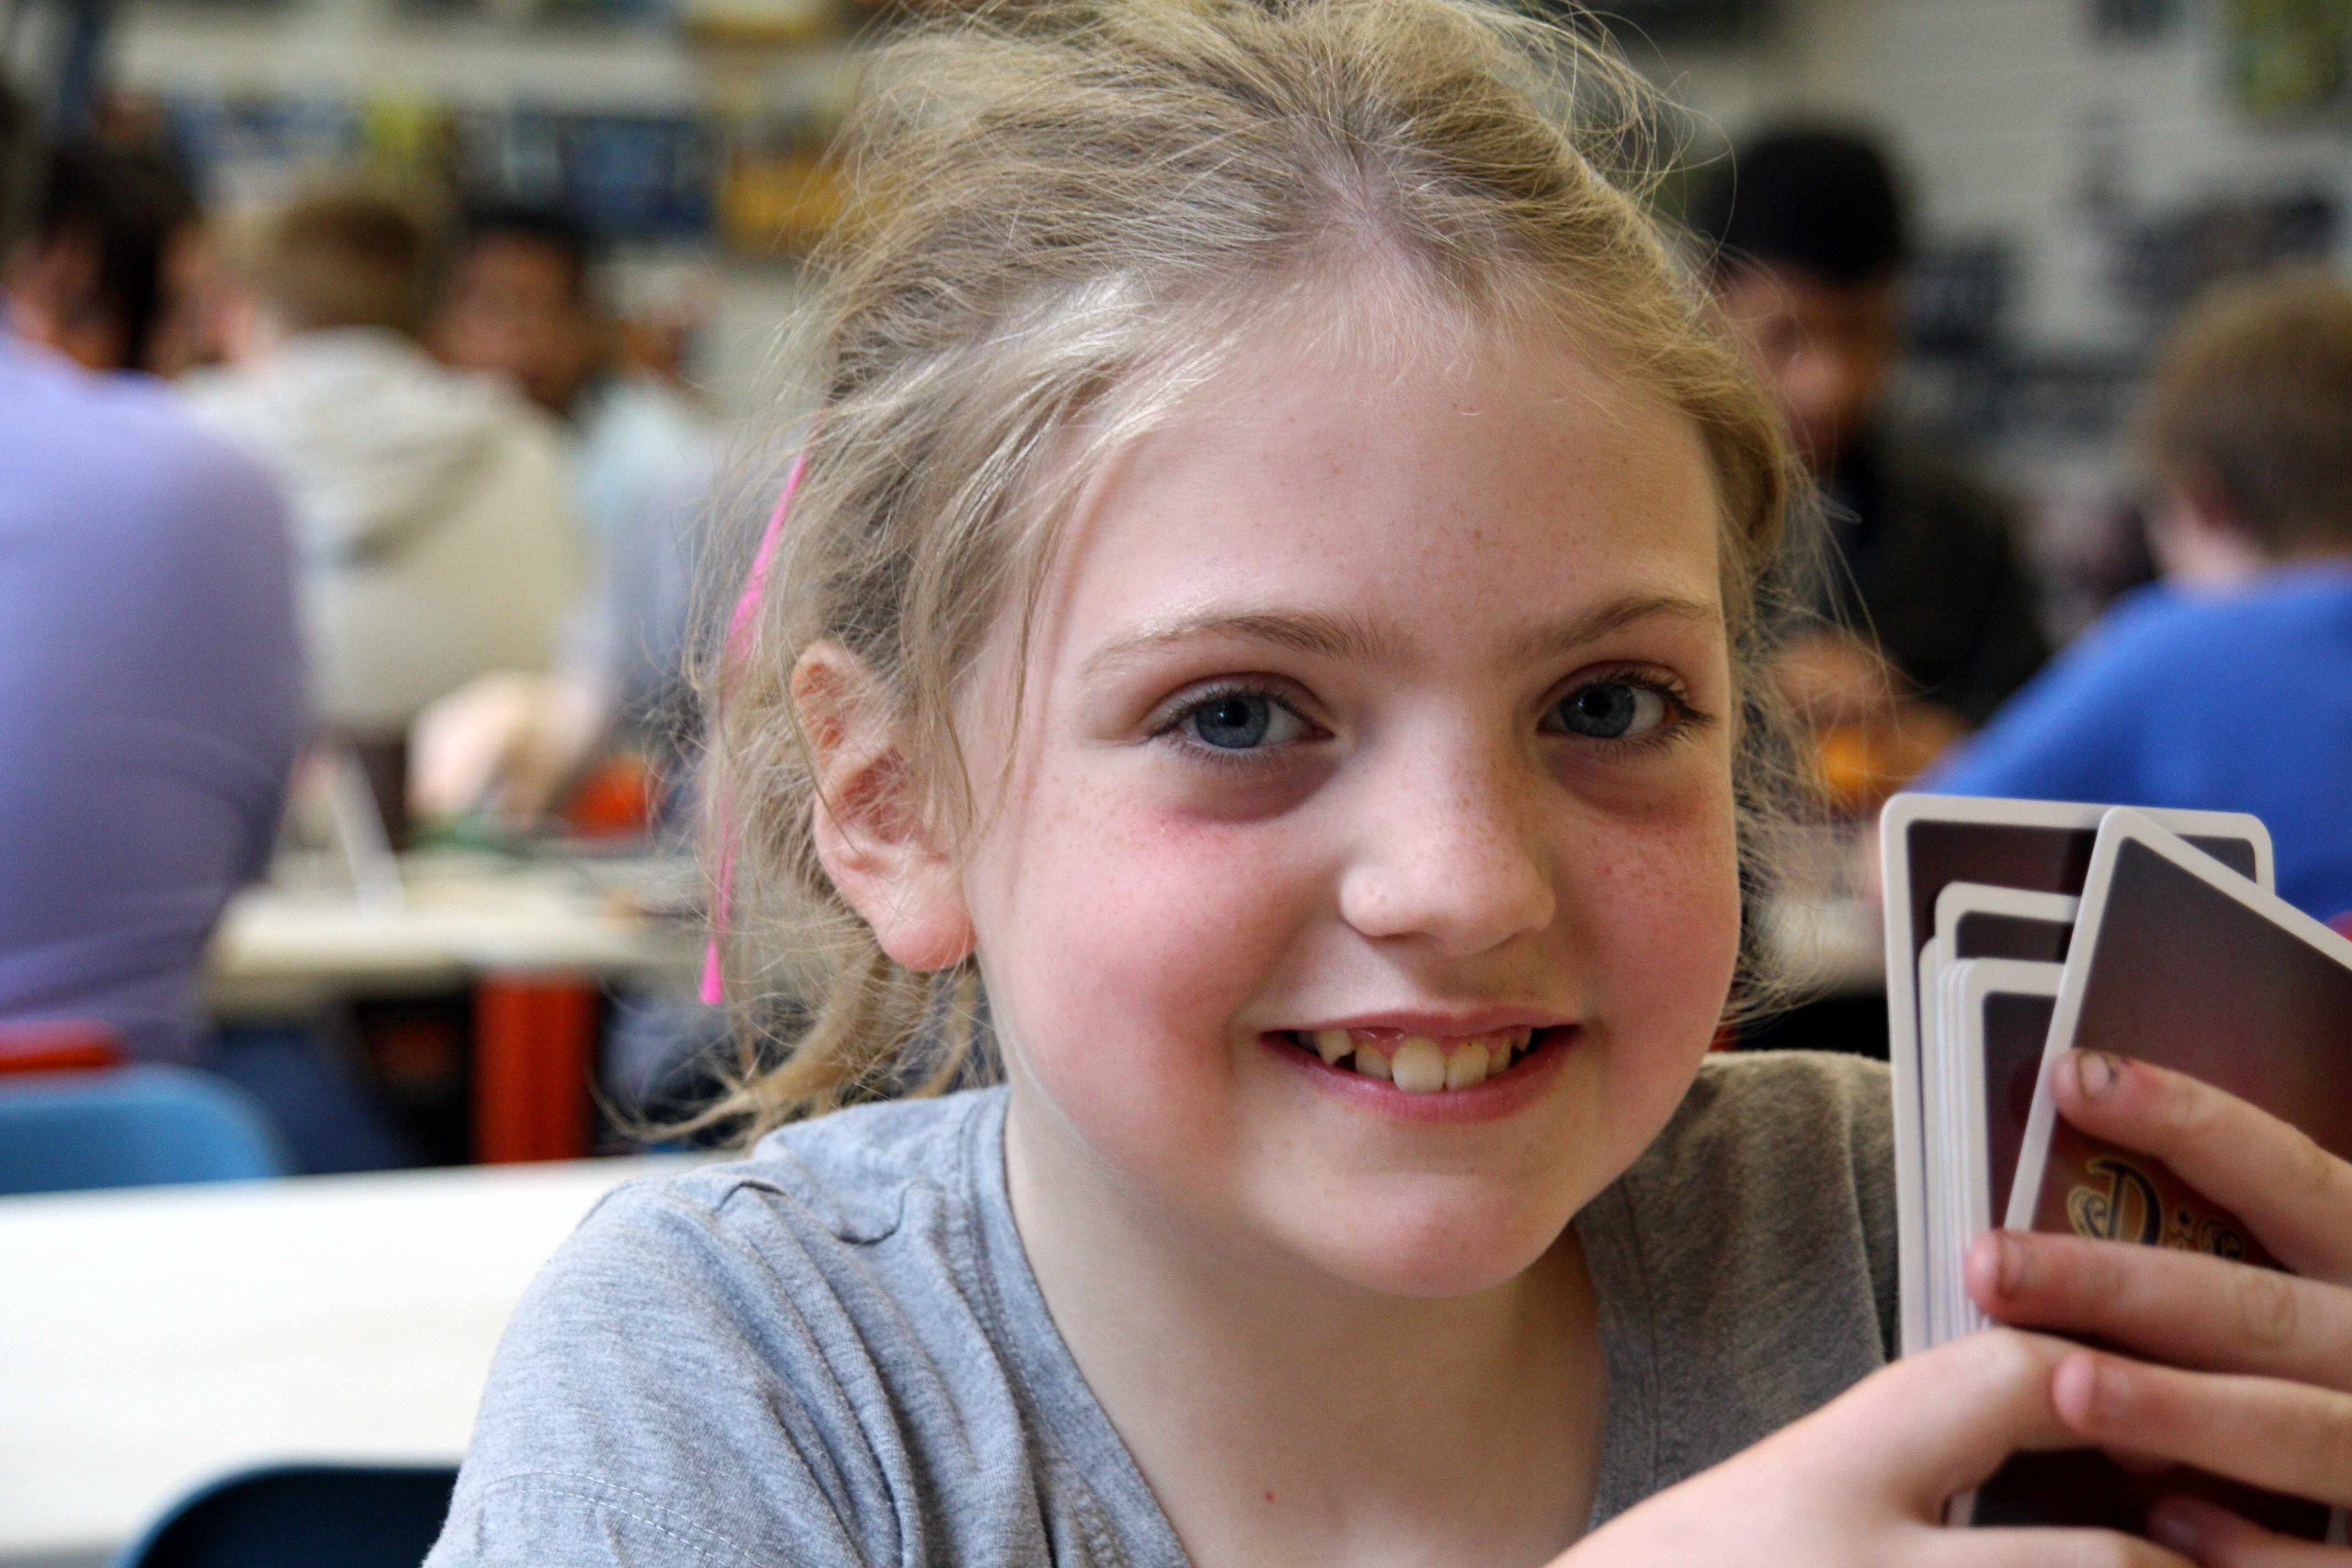 Little girl playing a card game and smiling to camera